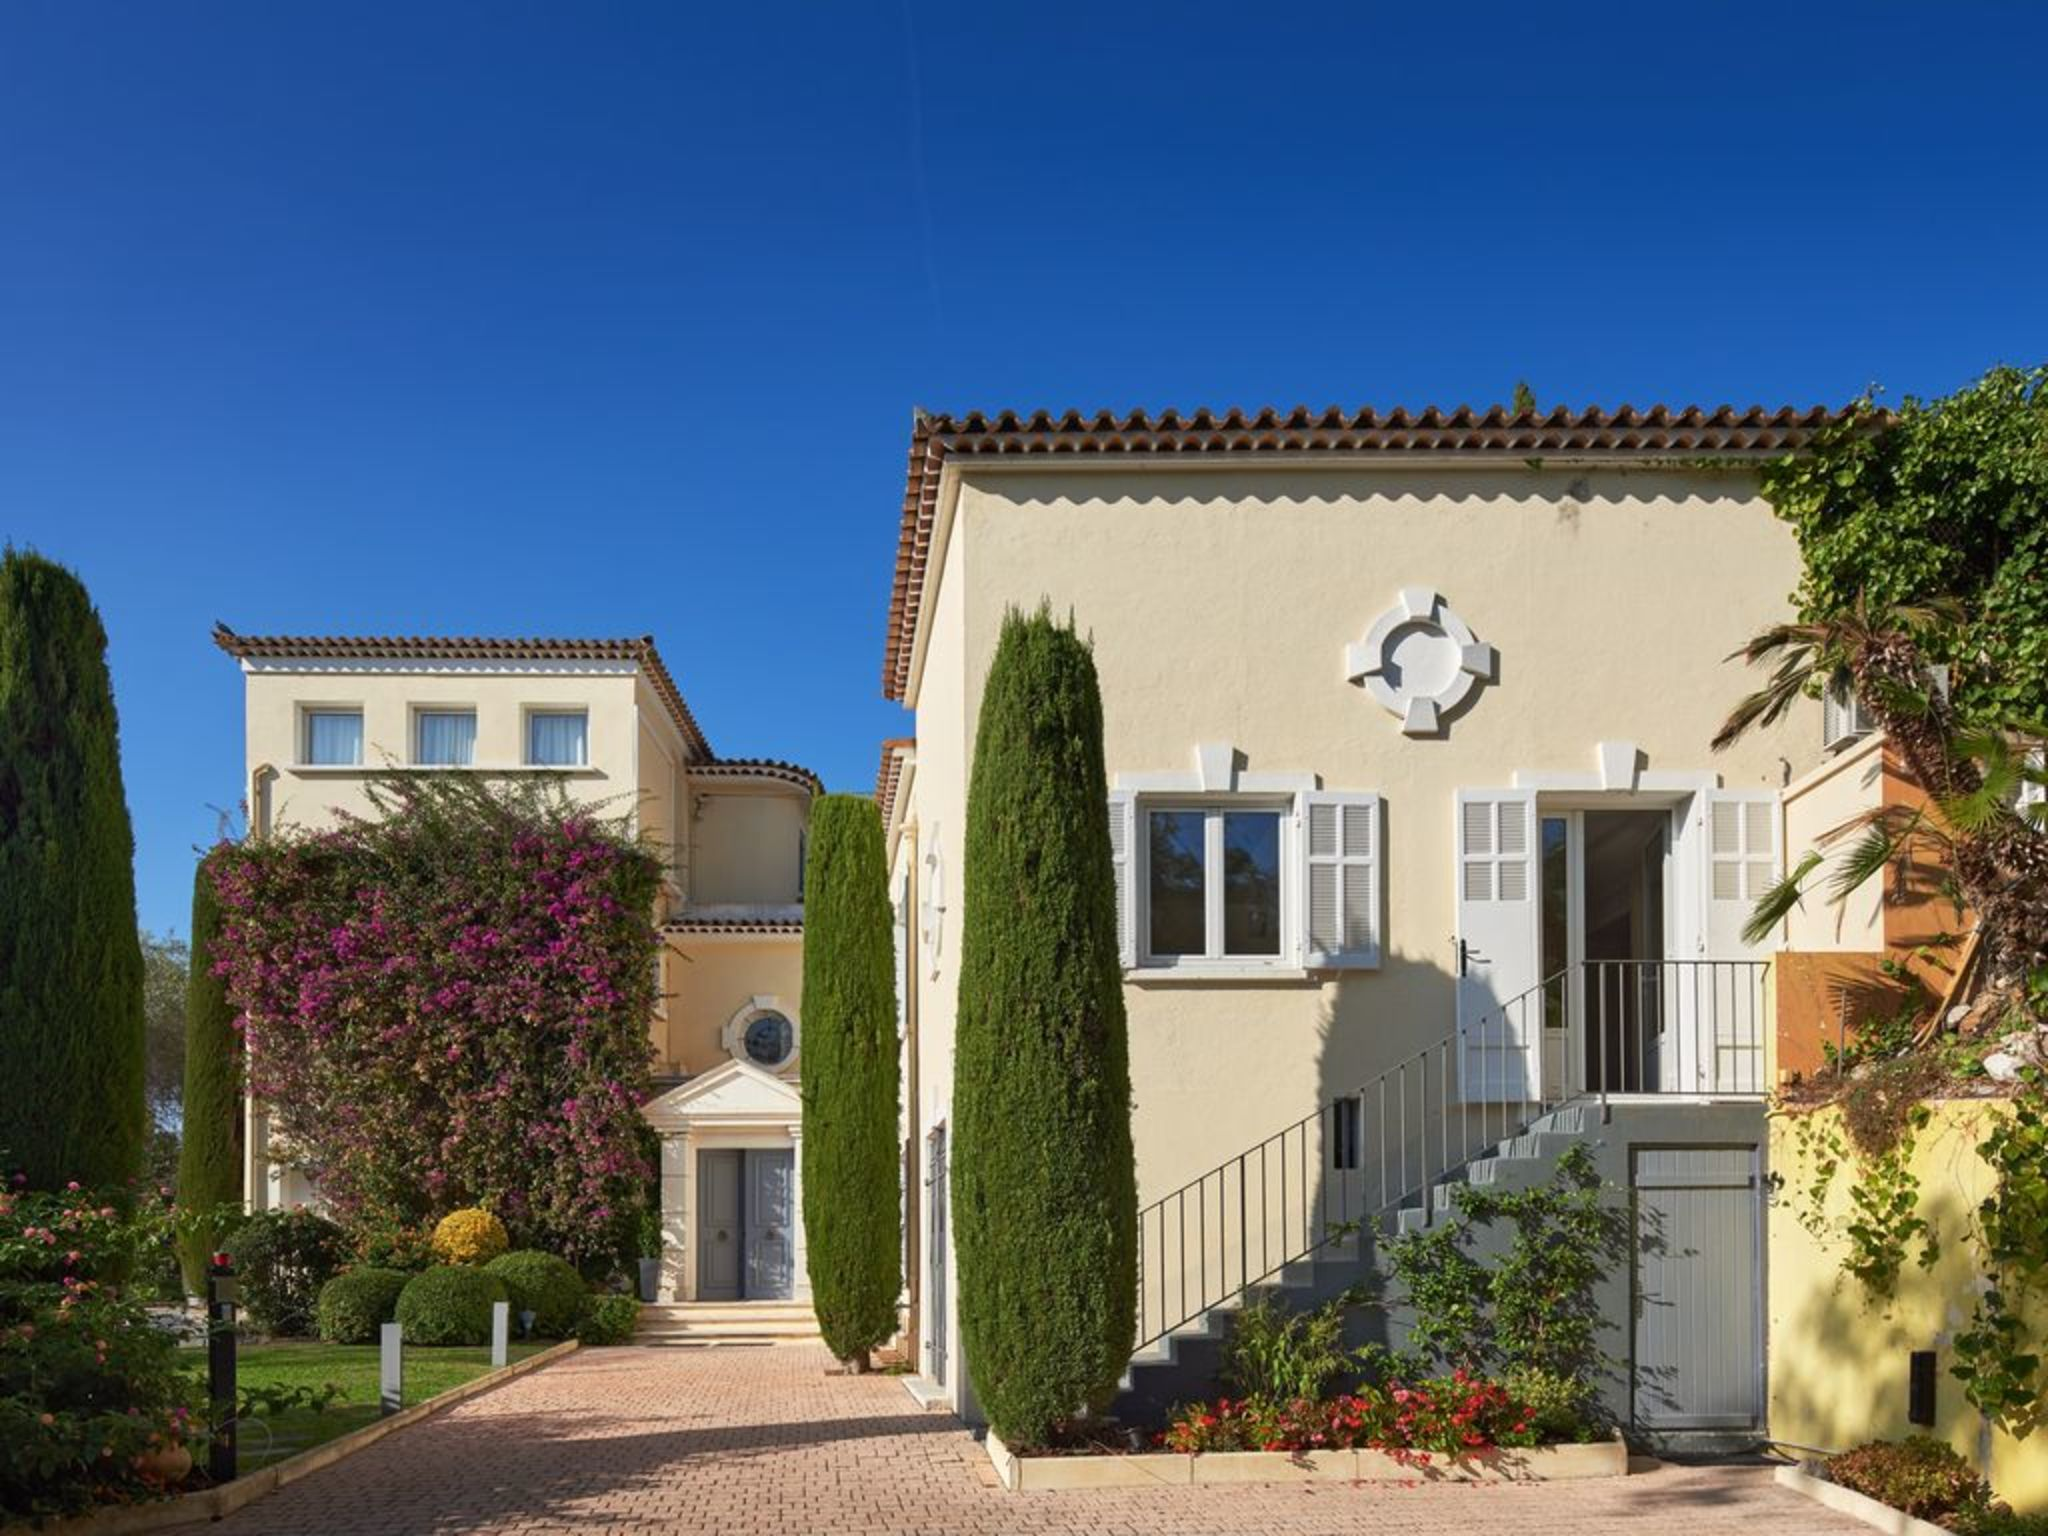 VILLA CALIFORNIE - QUARTIER CALIFORNIE A CANNES AVEC PISCINE photo 20454279